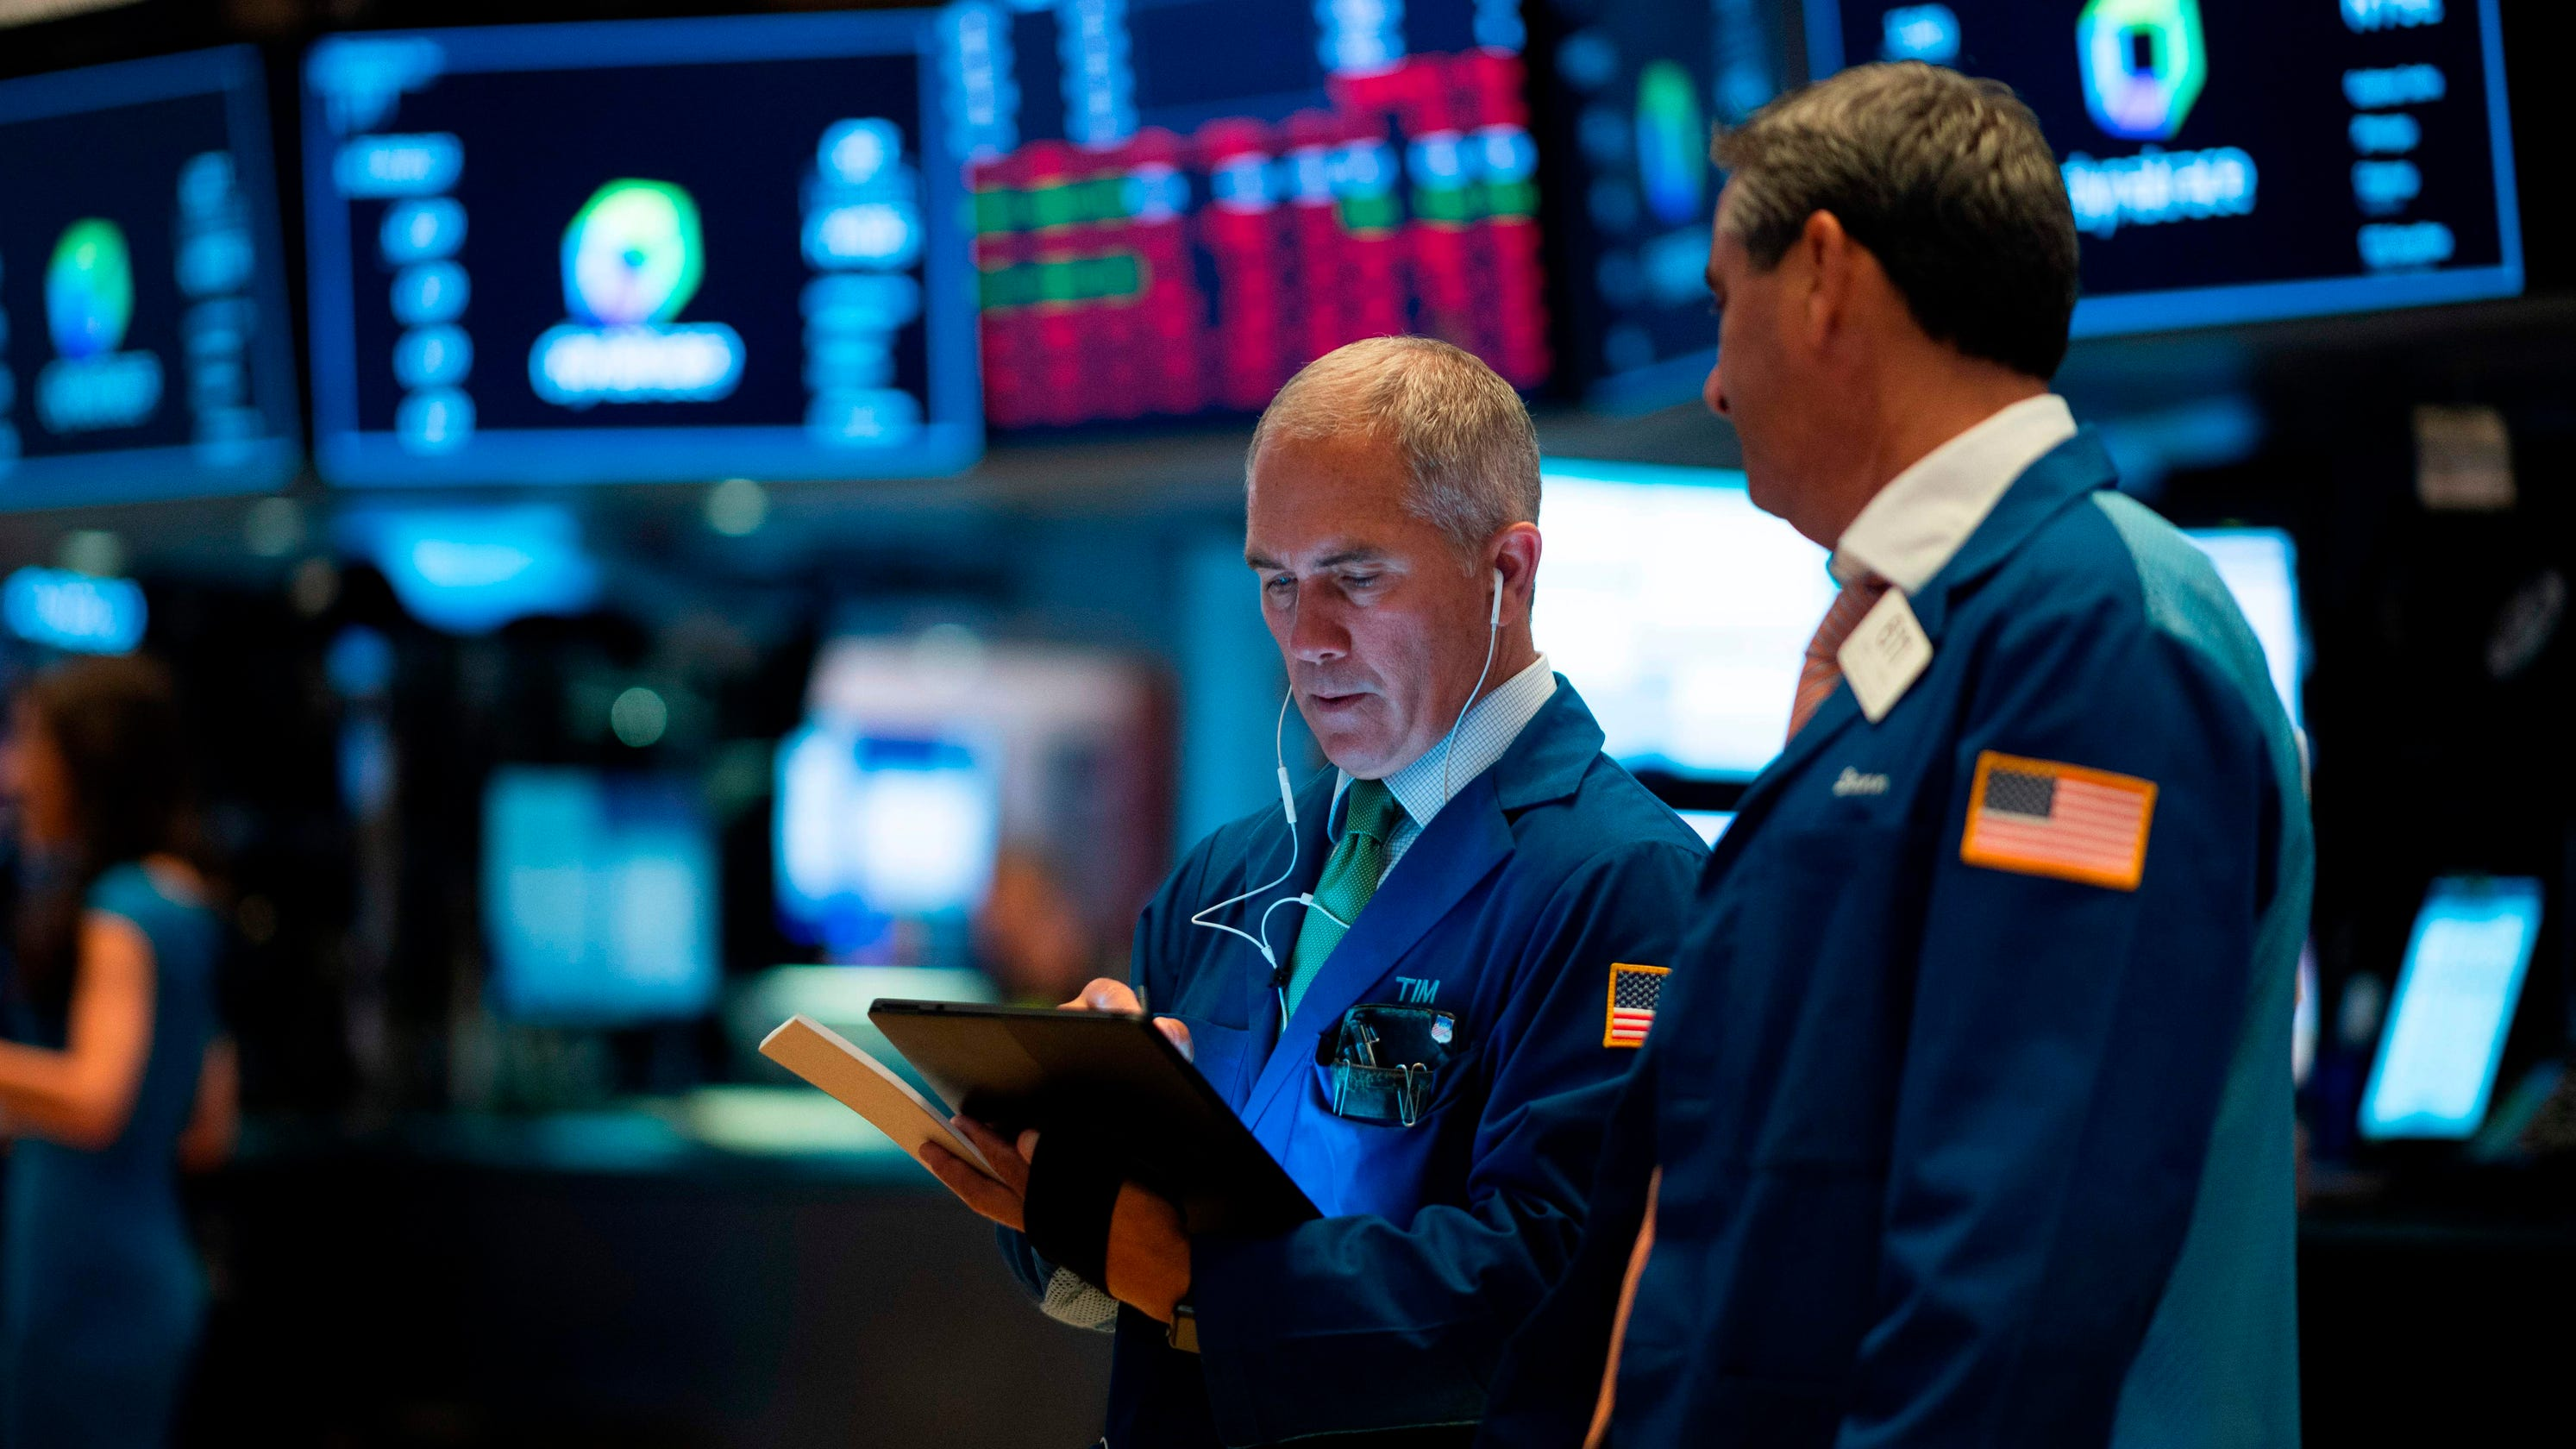 Stocks sink after Trump raises tariffs on China: Dow sours after positive morning thumbnail